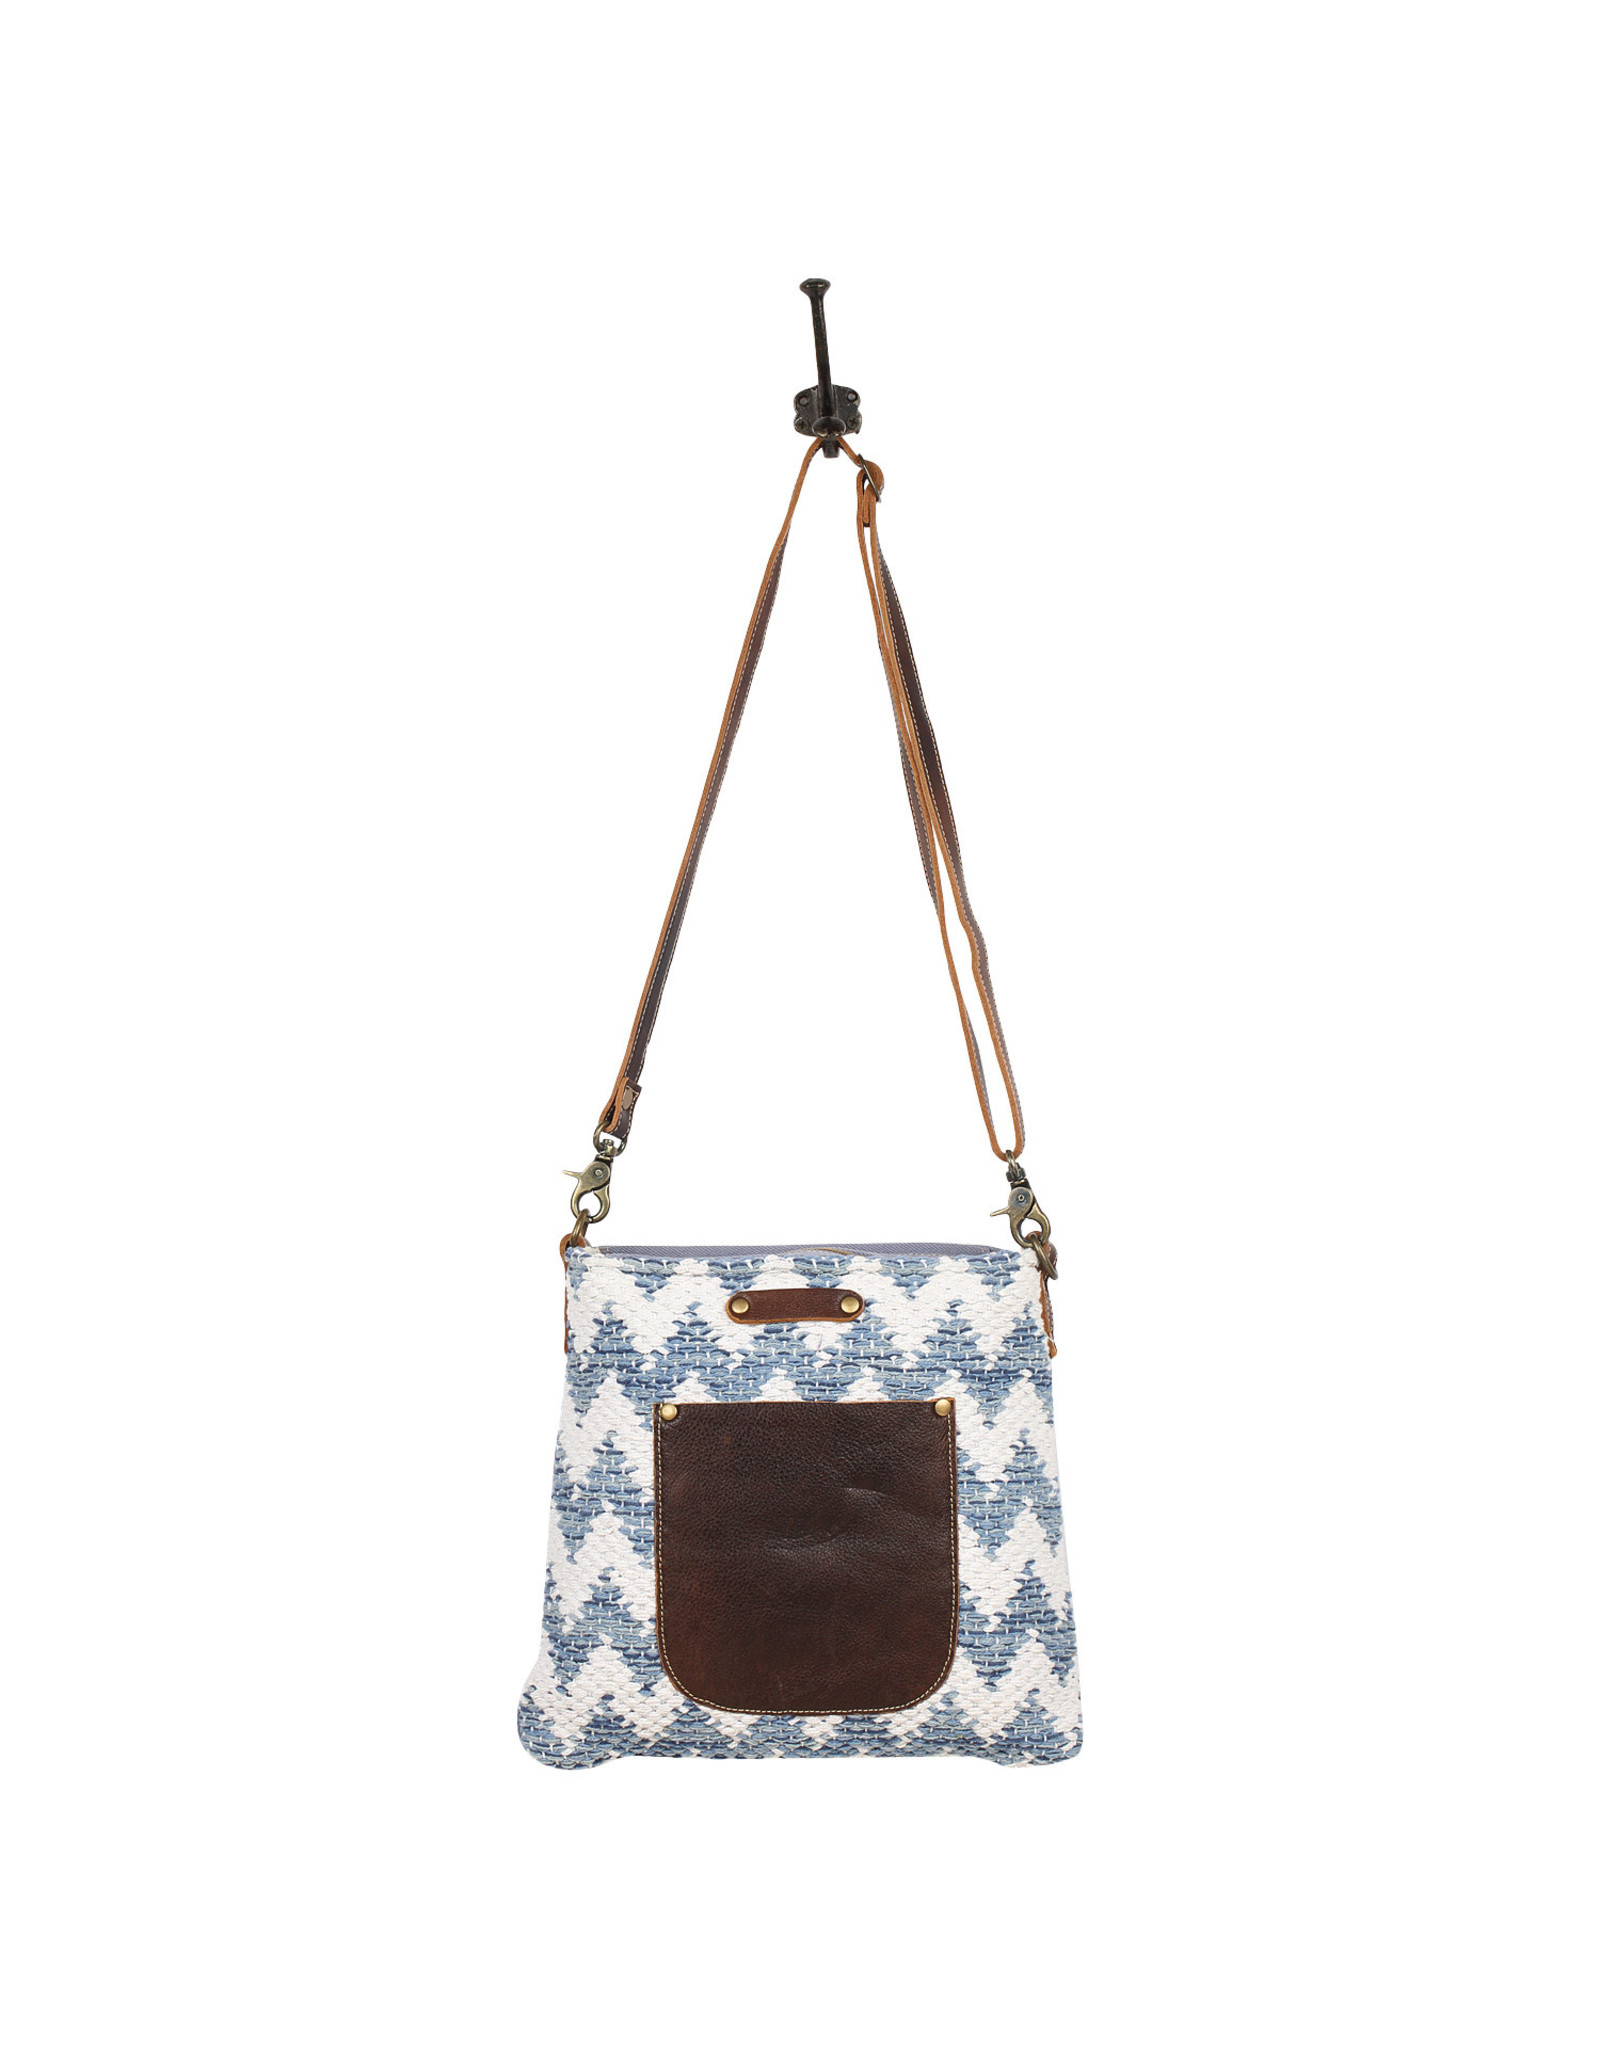 Myra Bags S-1538 Supple Shoulder Bag